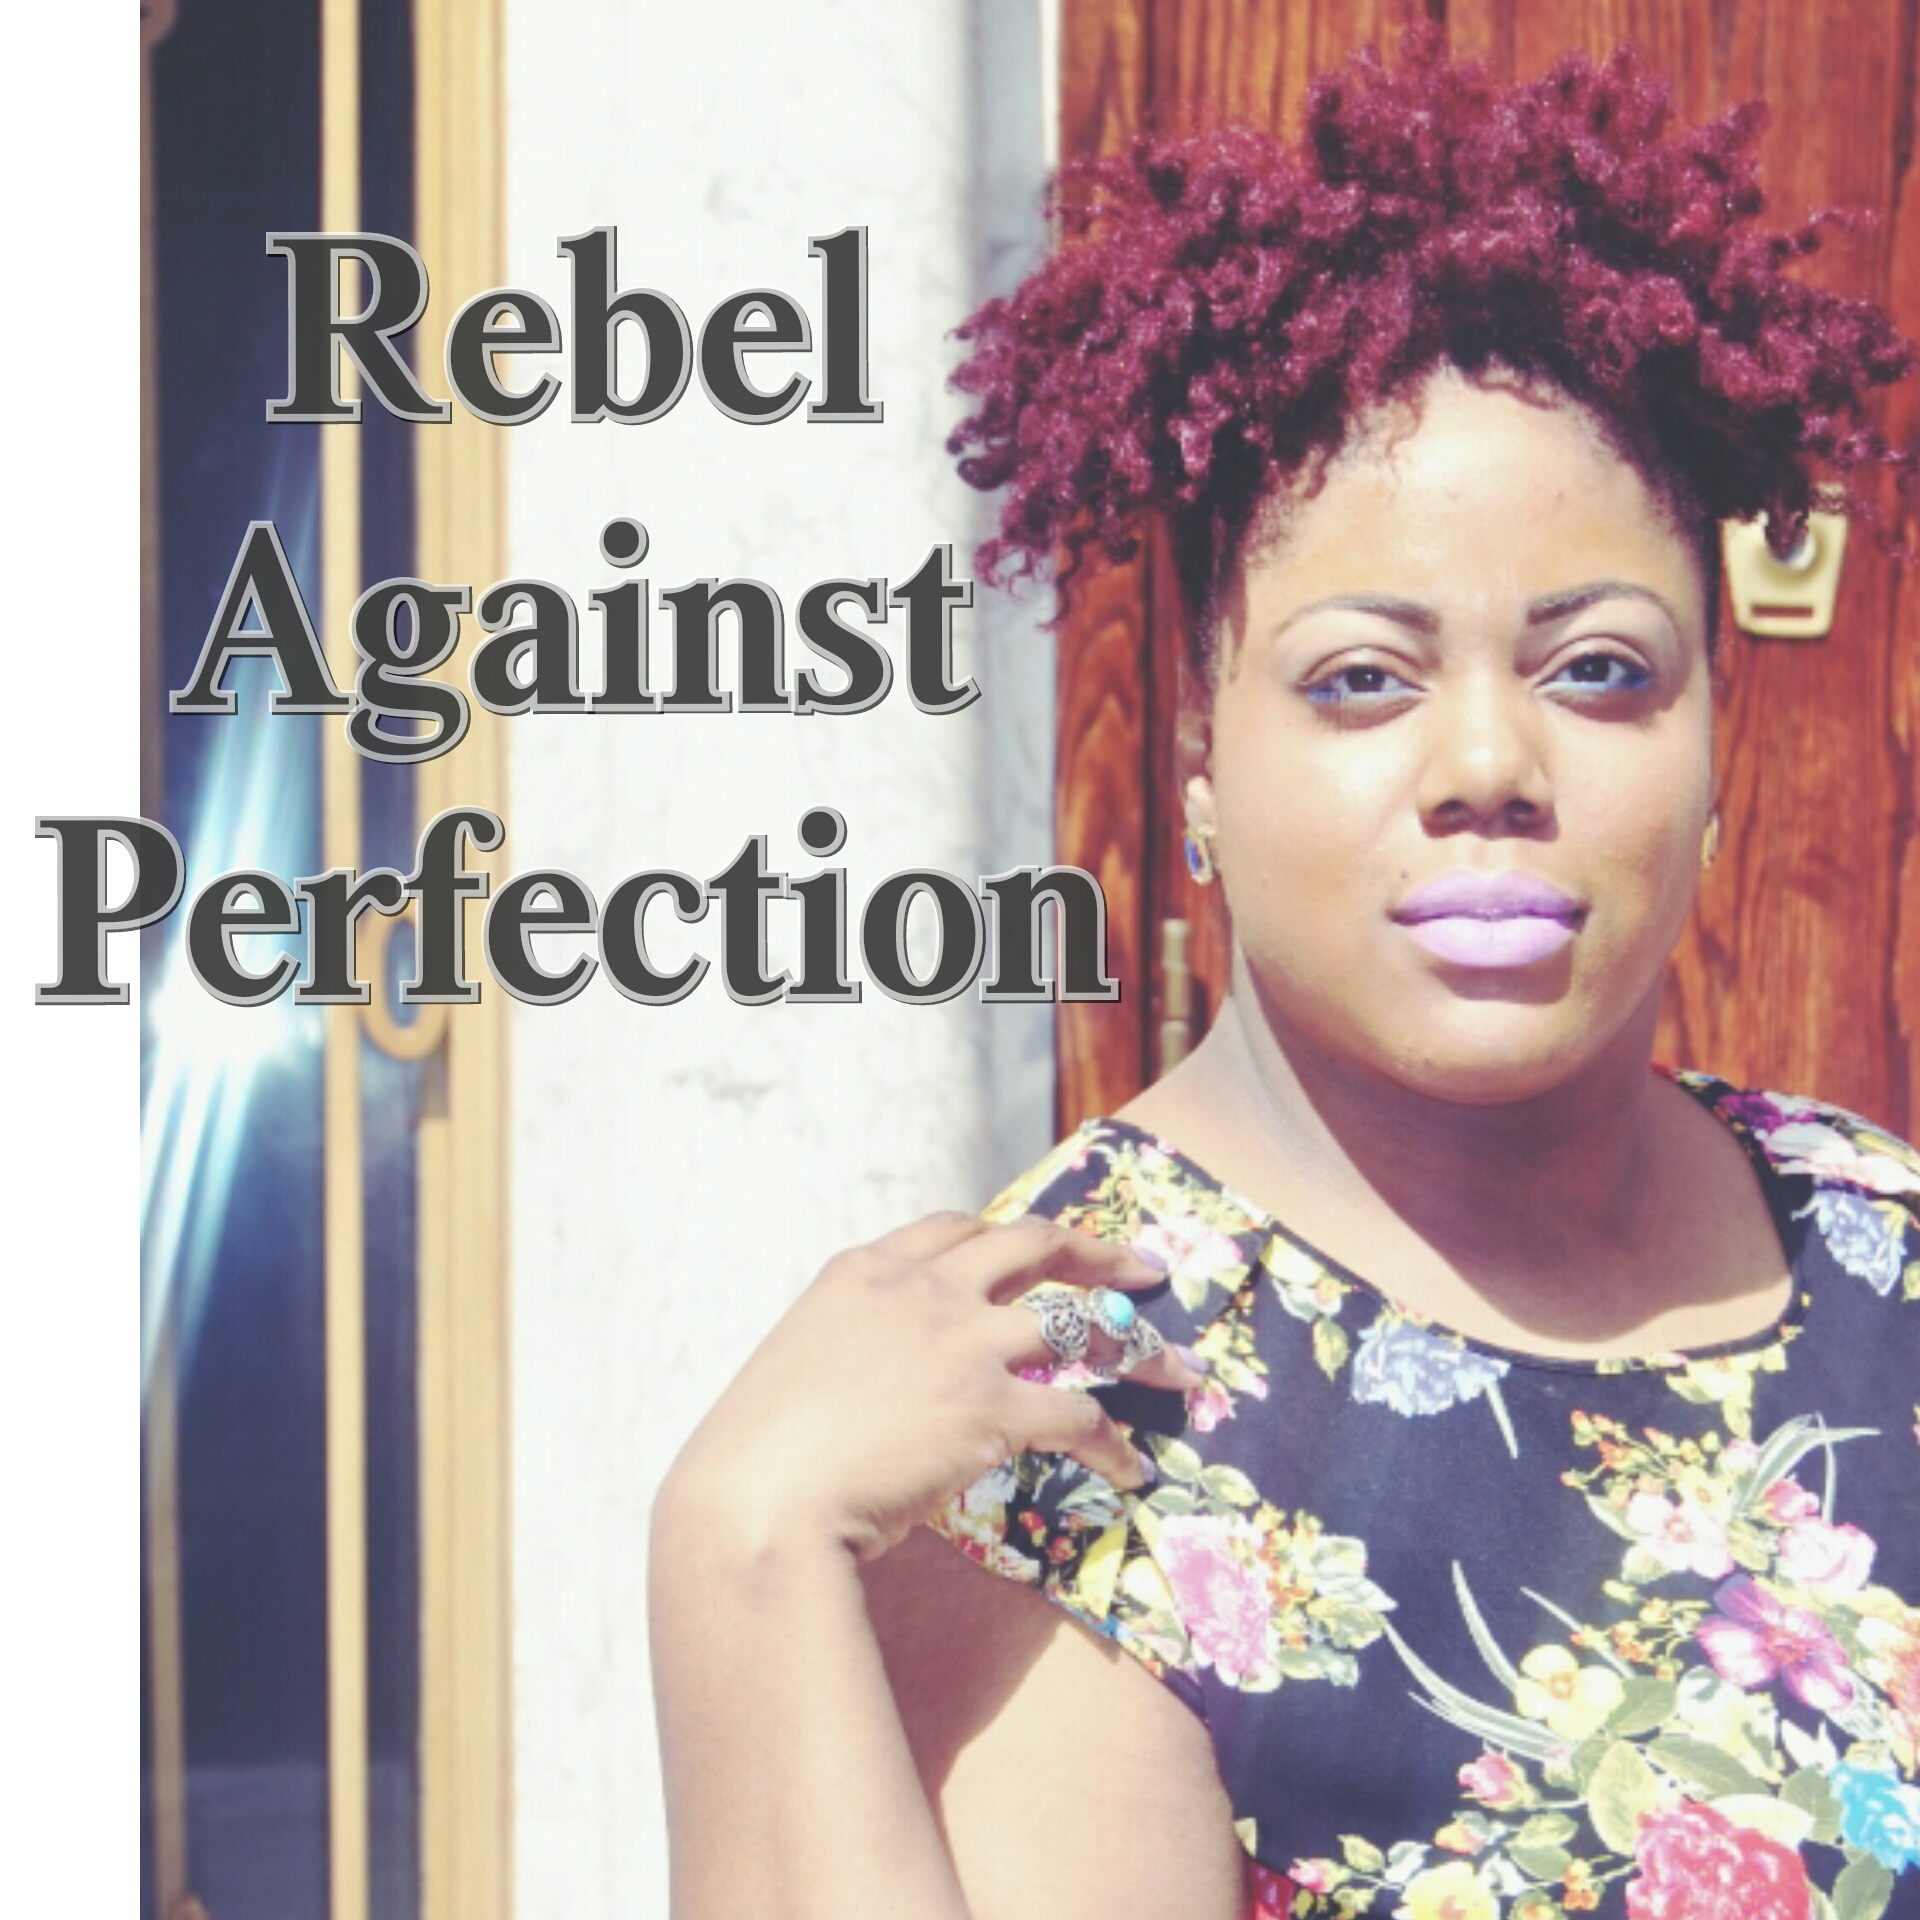 Rebel Against Perfection